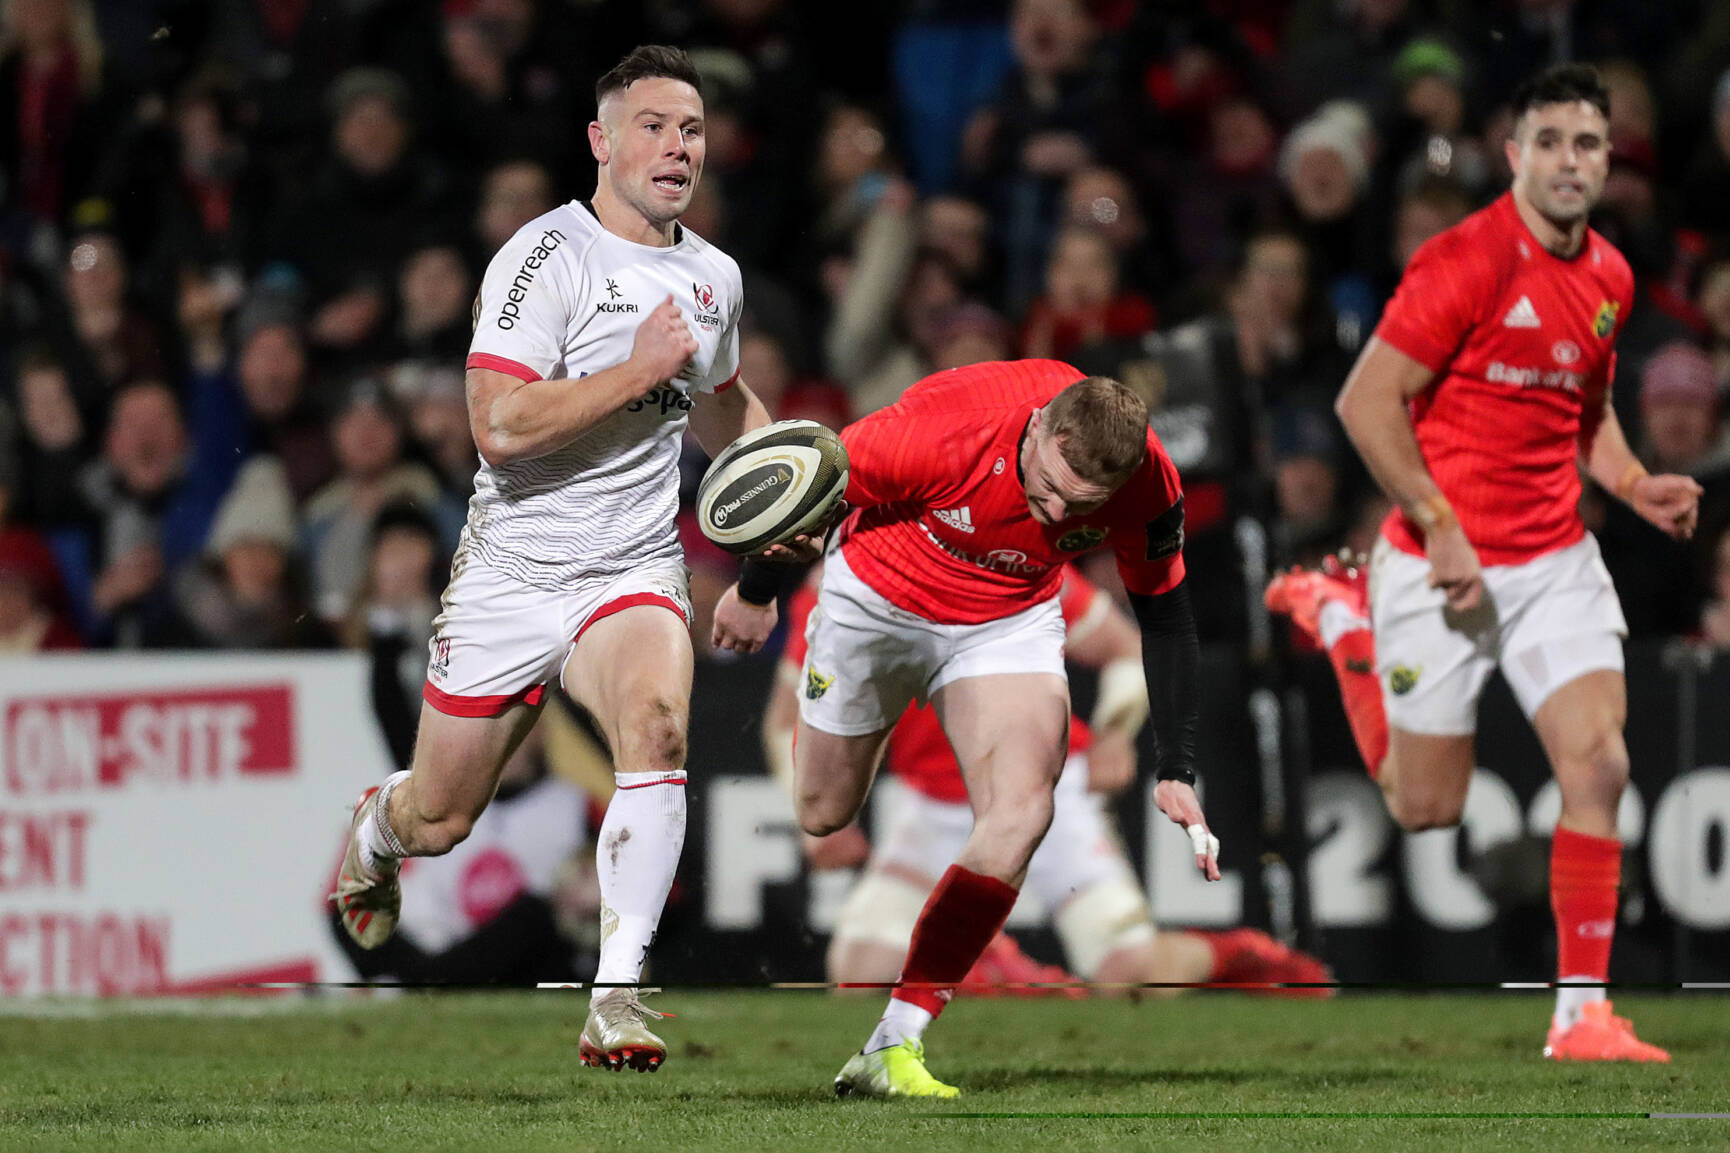 McCloskey And Cooney Lead Ulster To Five-Try Derby Triumph